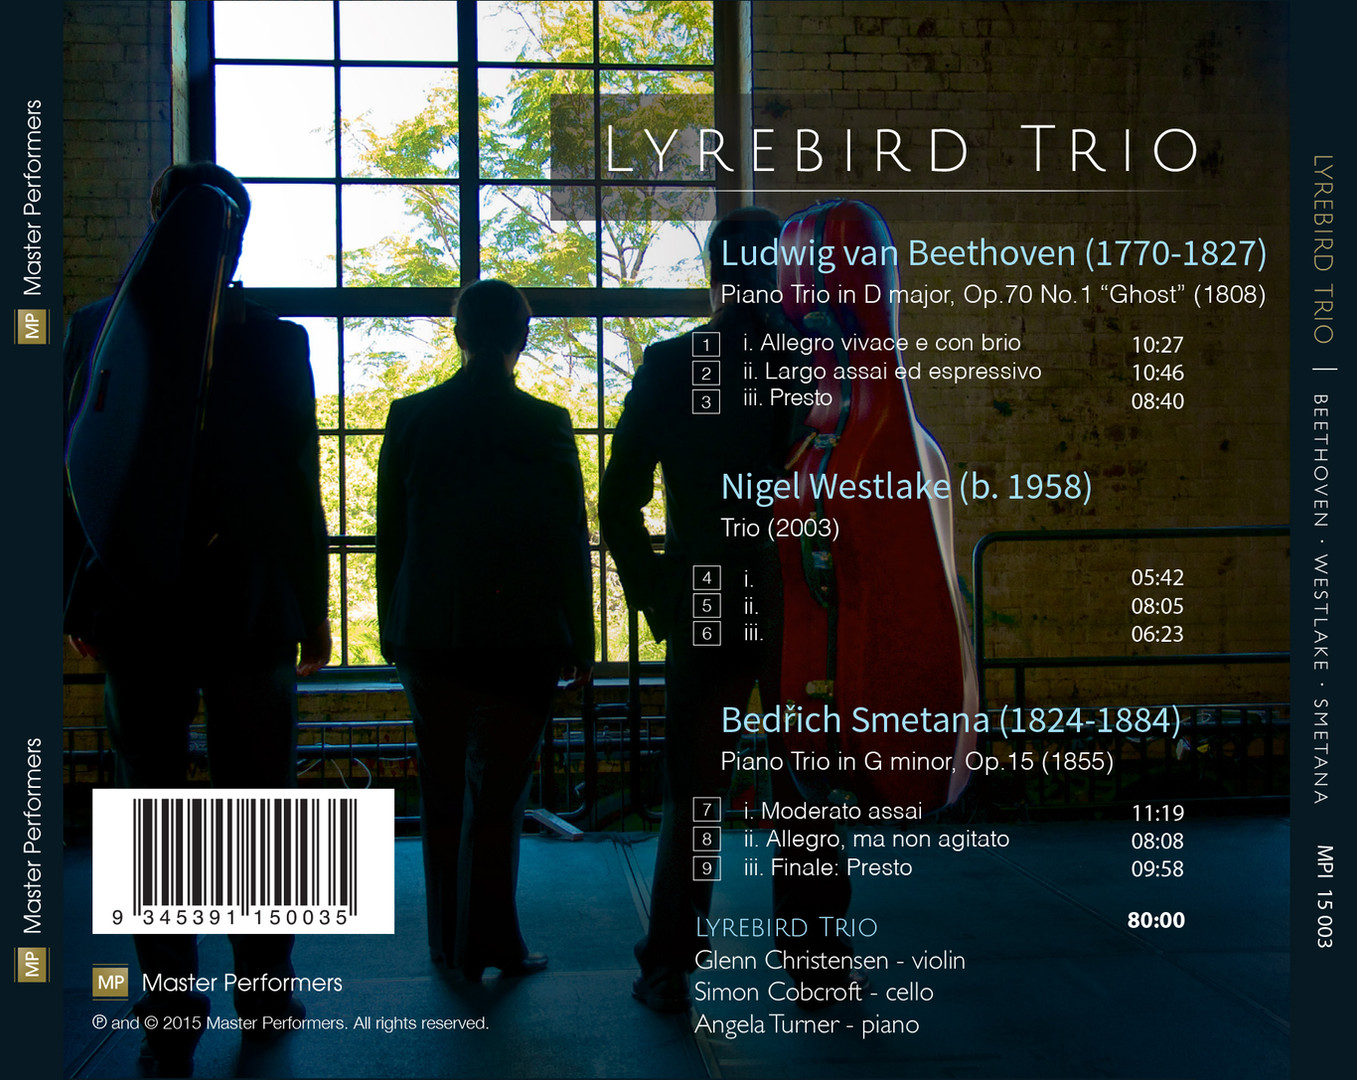 Lyrebird Trio Beethoven Westlake Smetana CD Tray